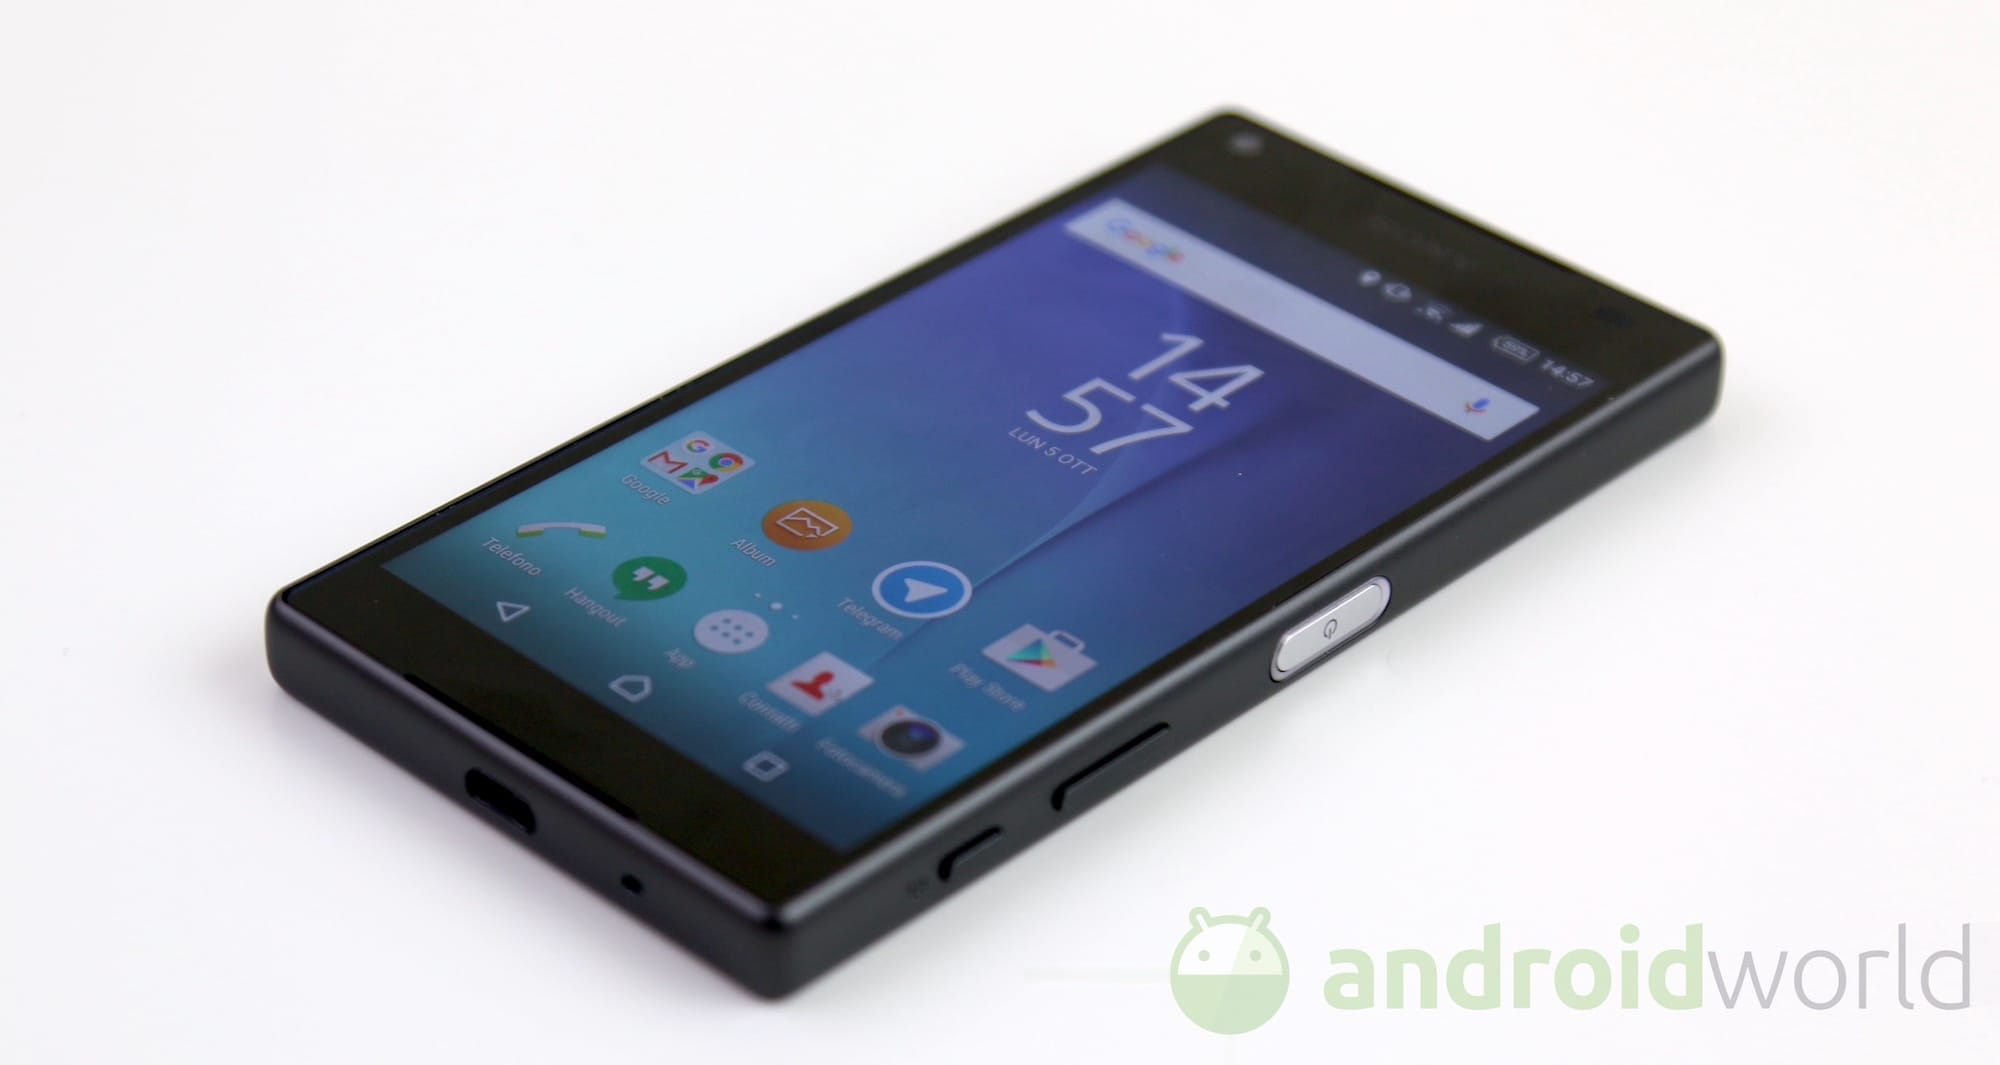 Sony Xperia Z5 Compact riceve Android 6.0.3 Marshmallow grazie al team Paranoid